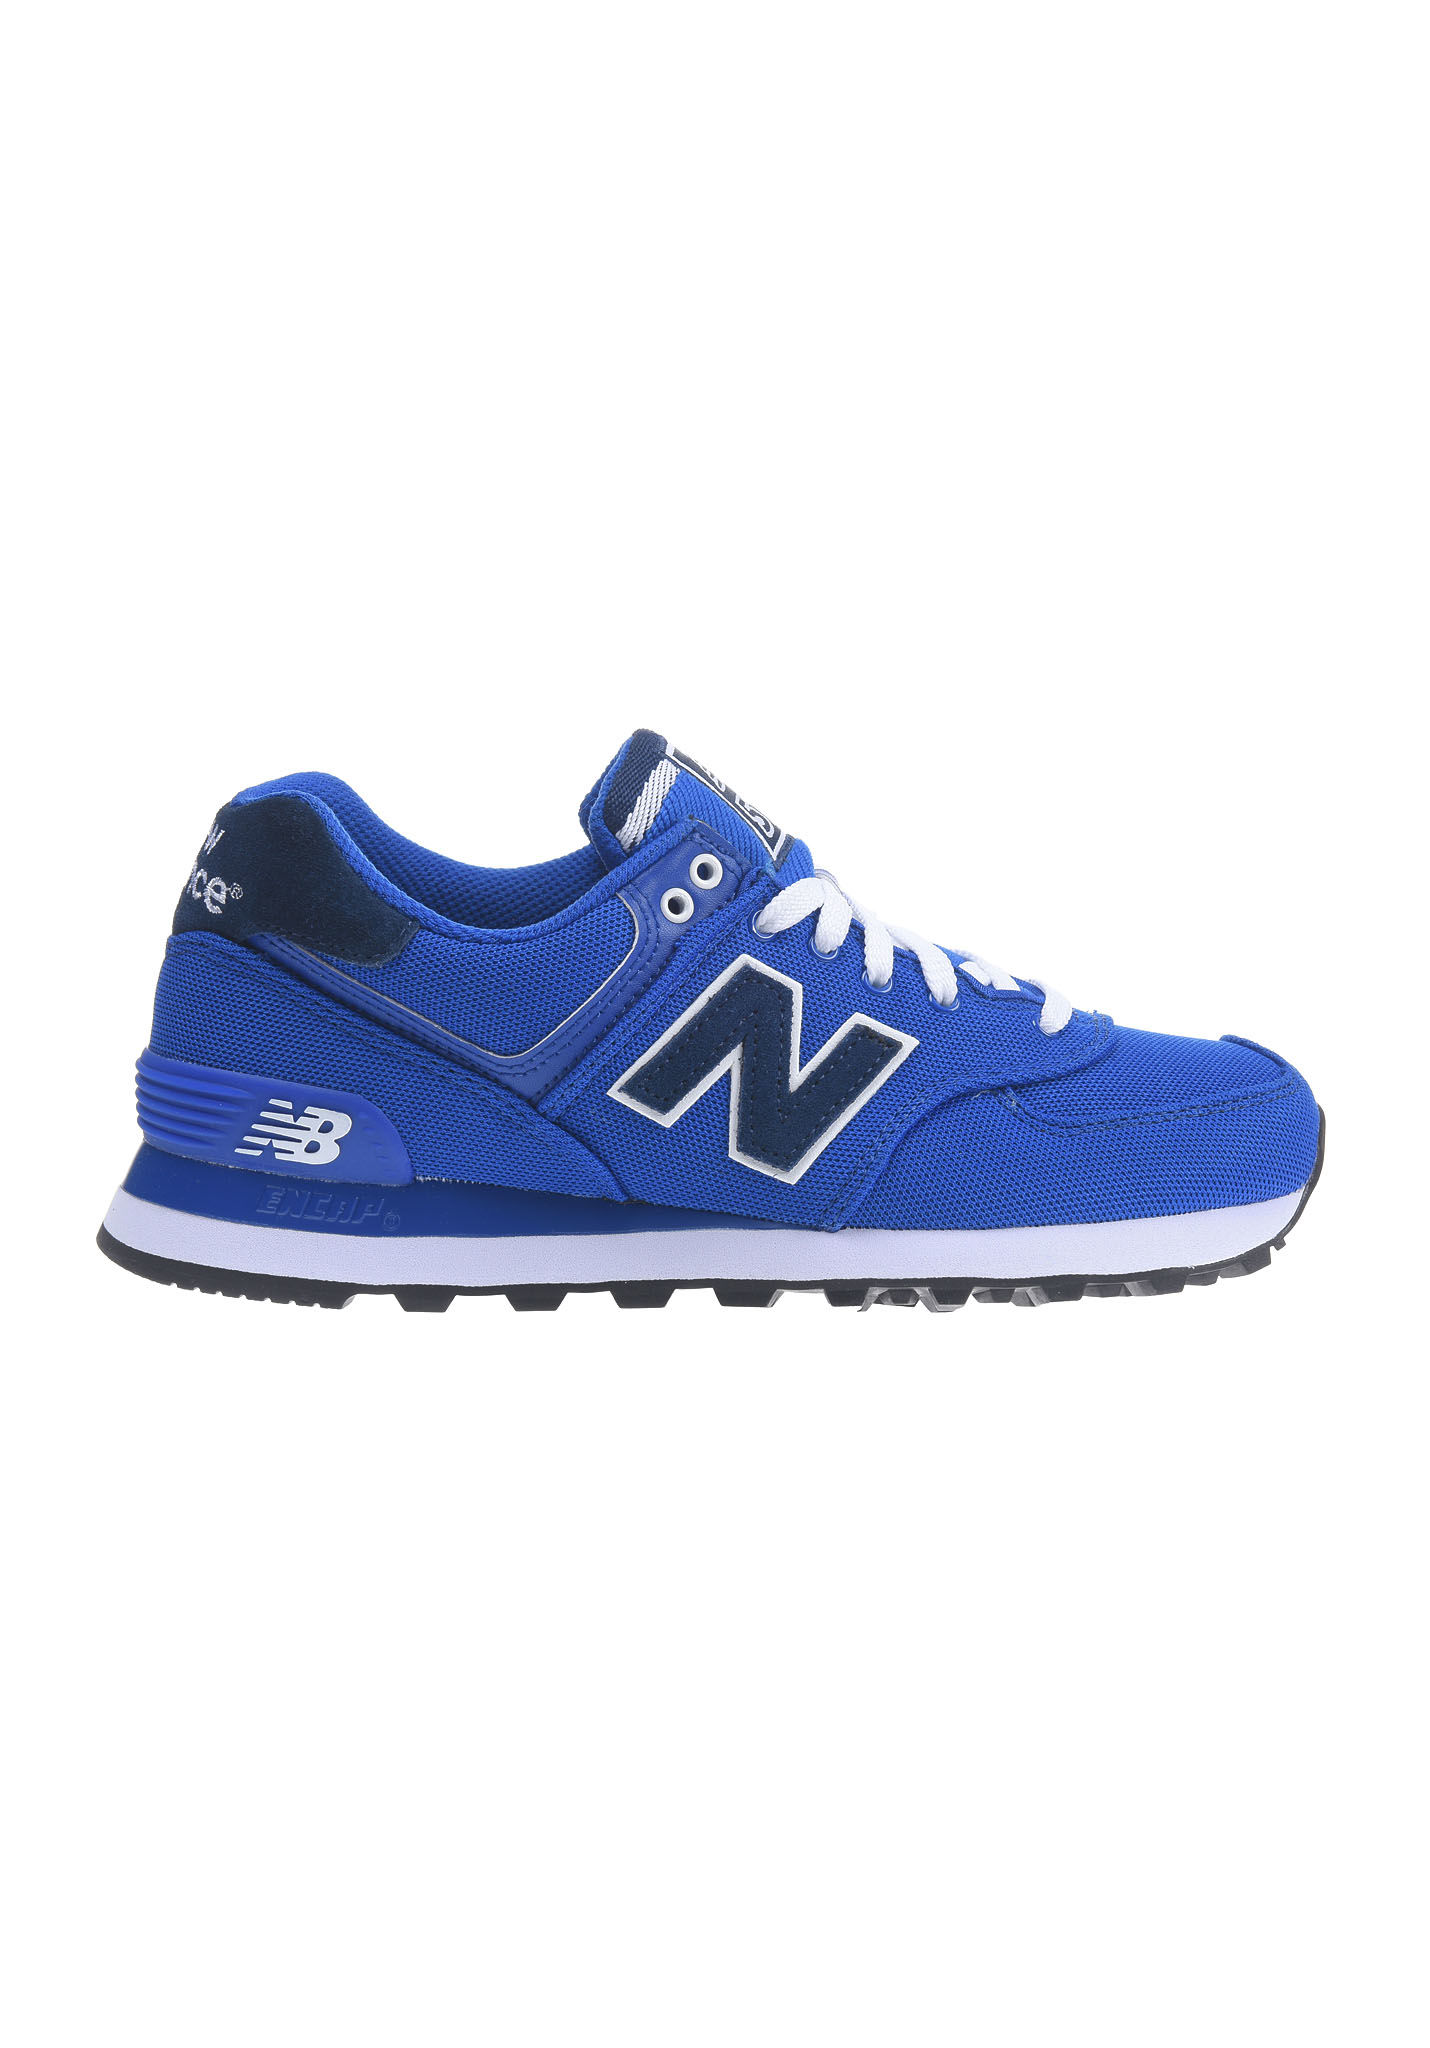 6e6a269501a NEW BALANCE ML574 D - Sneakers for Women - Blue - Planet Sports